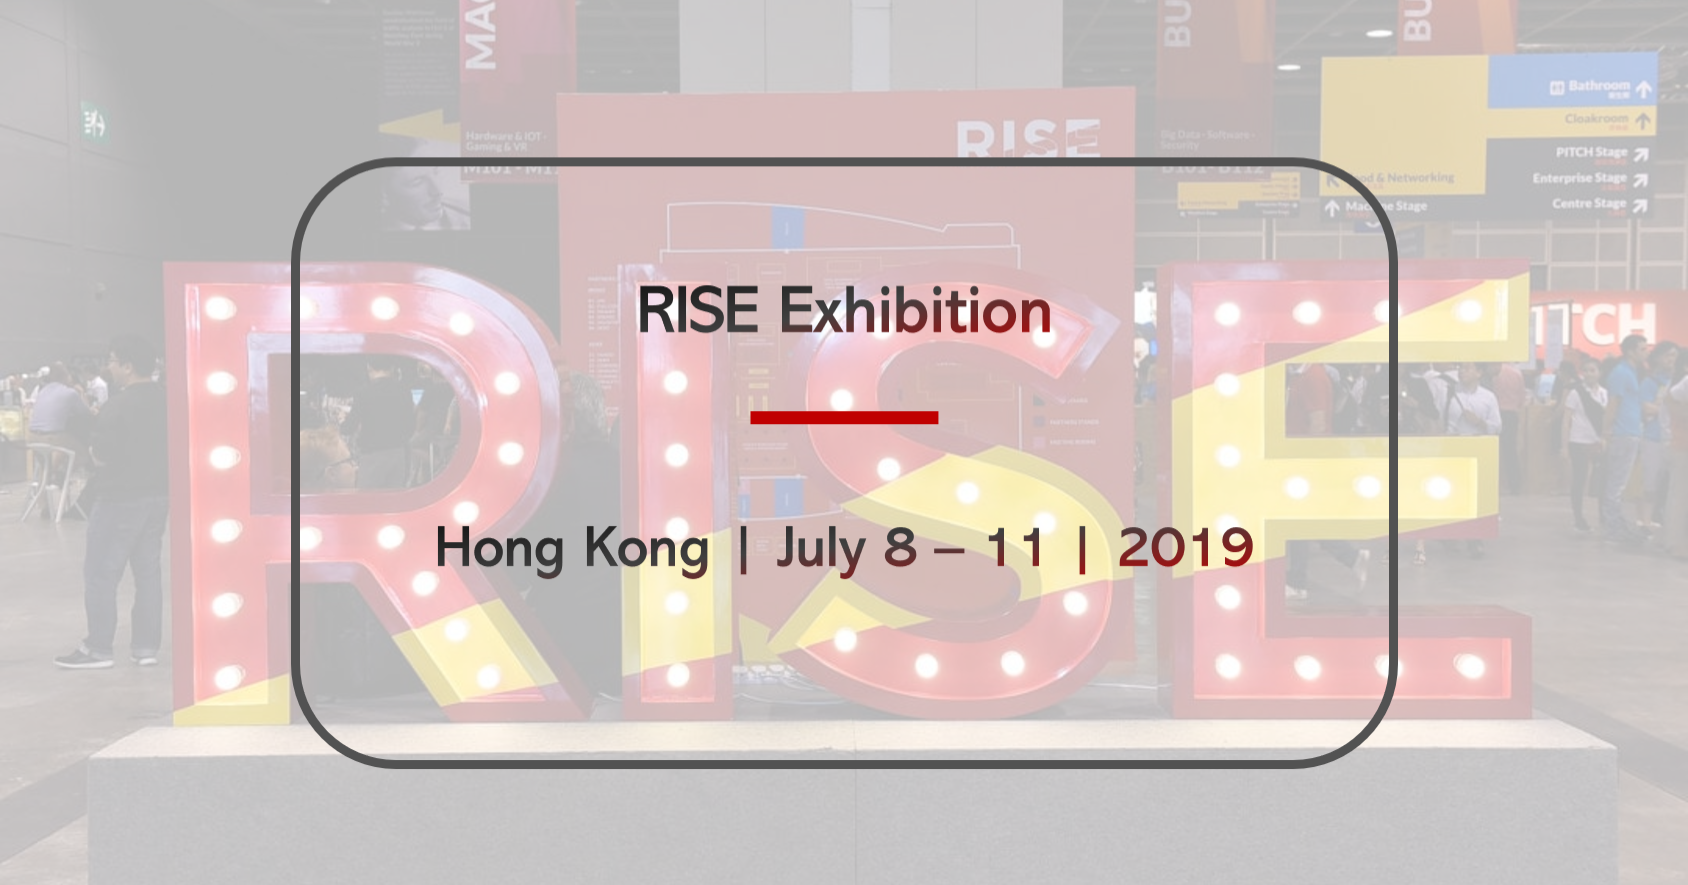 RISE Conference 2019